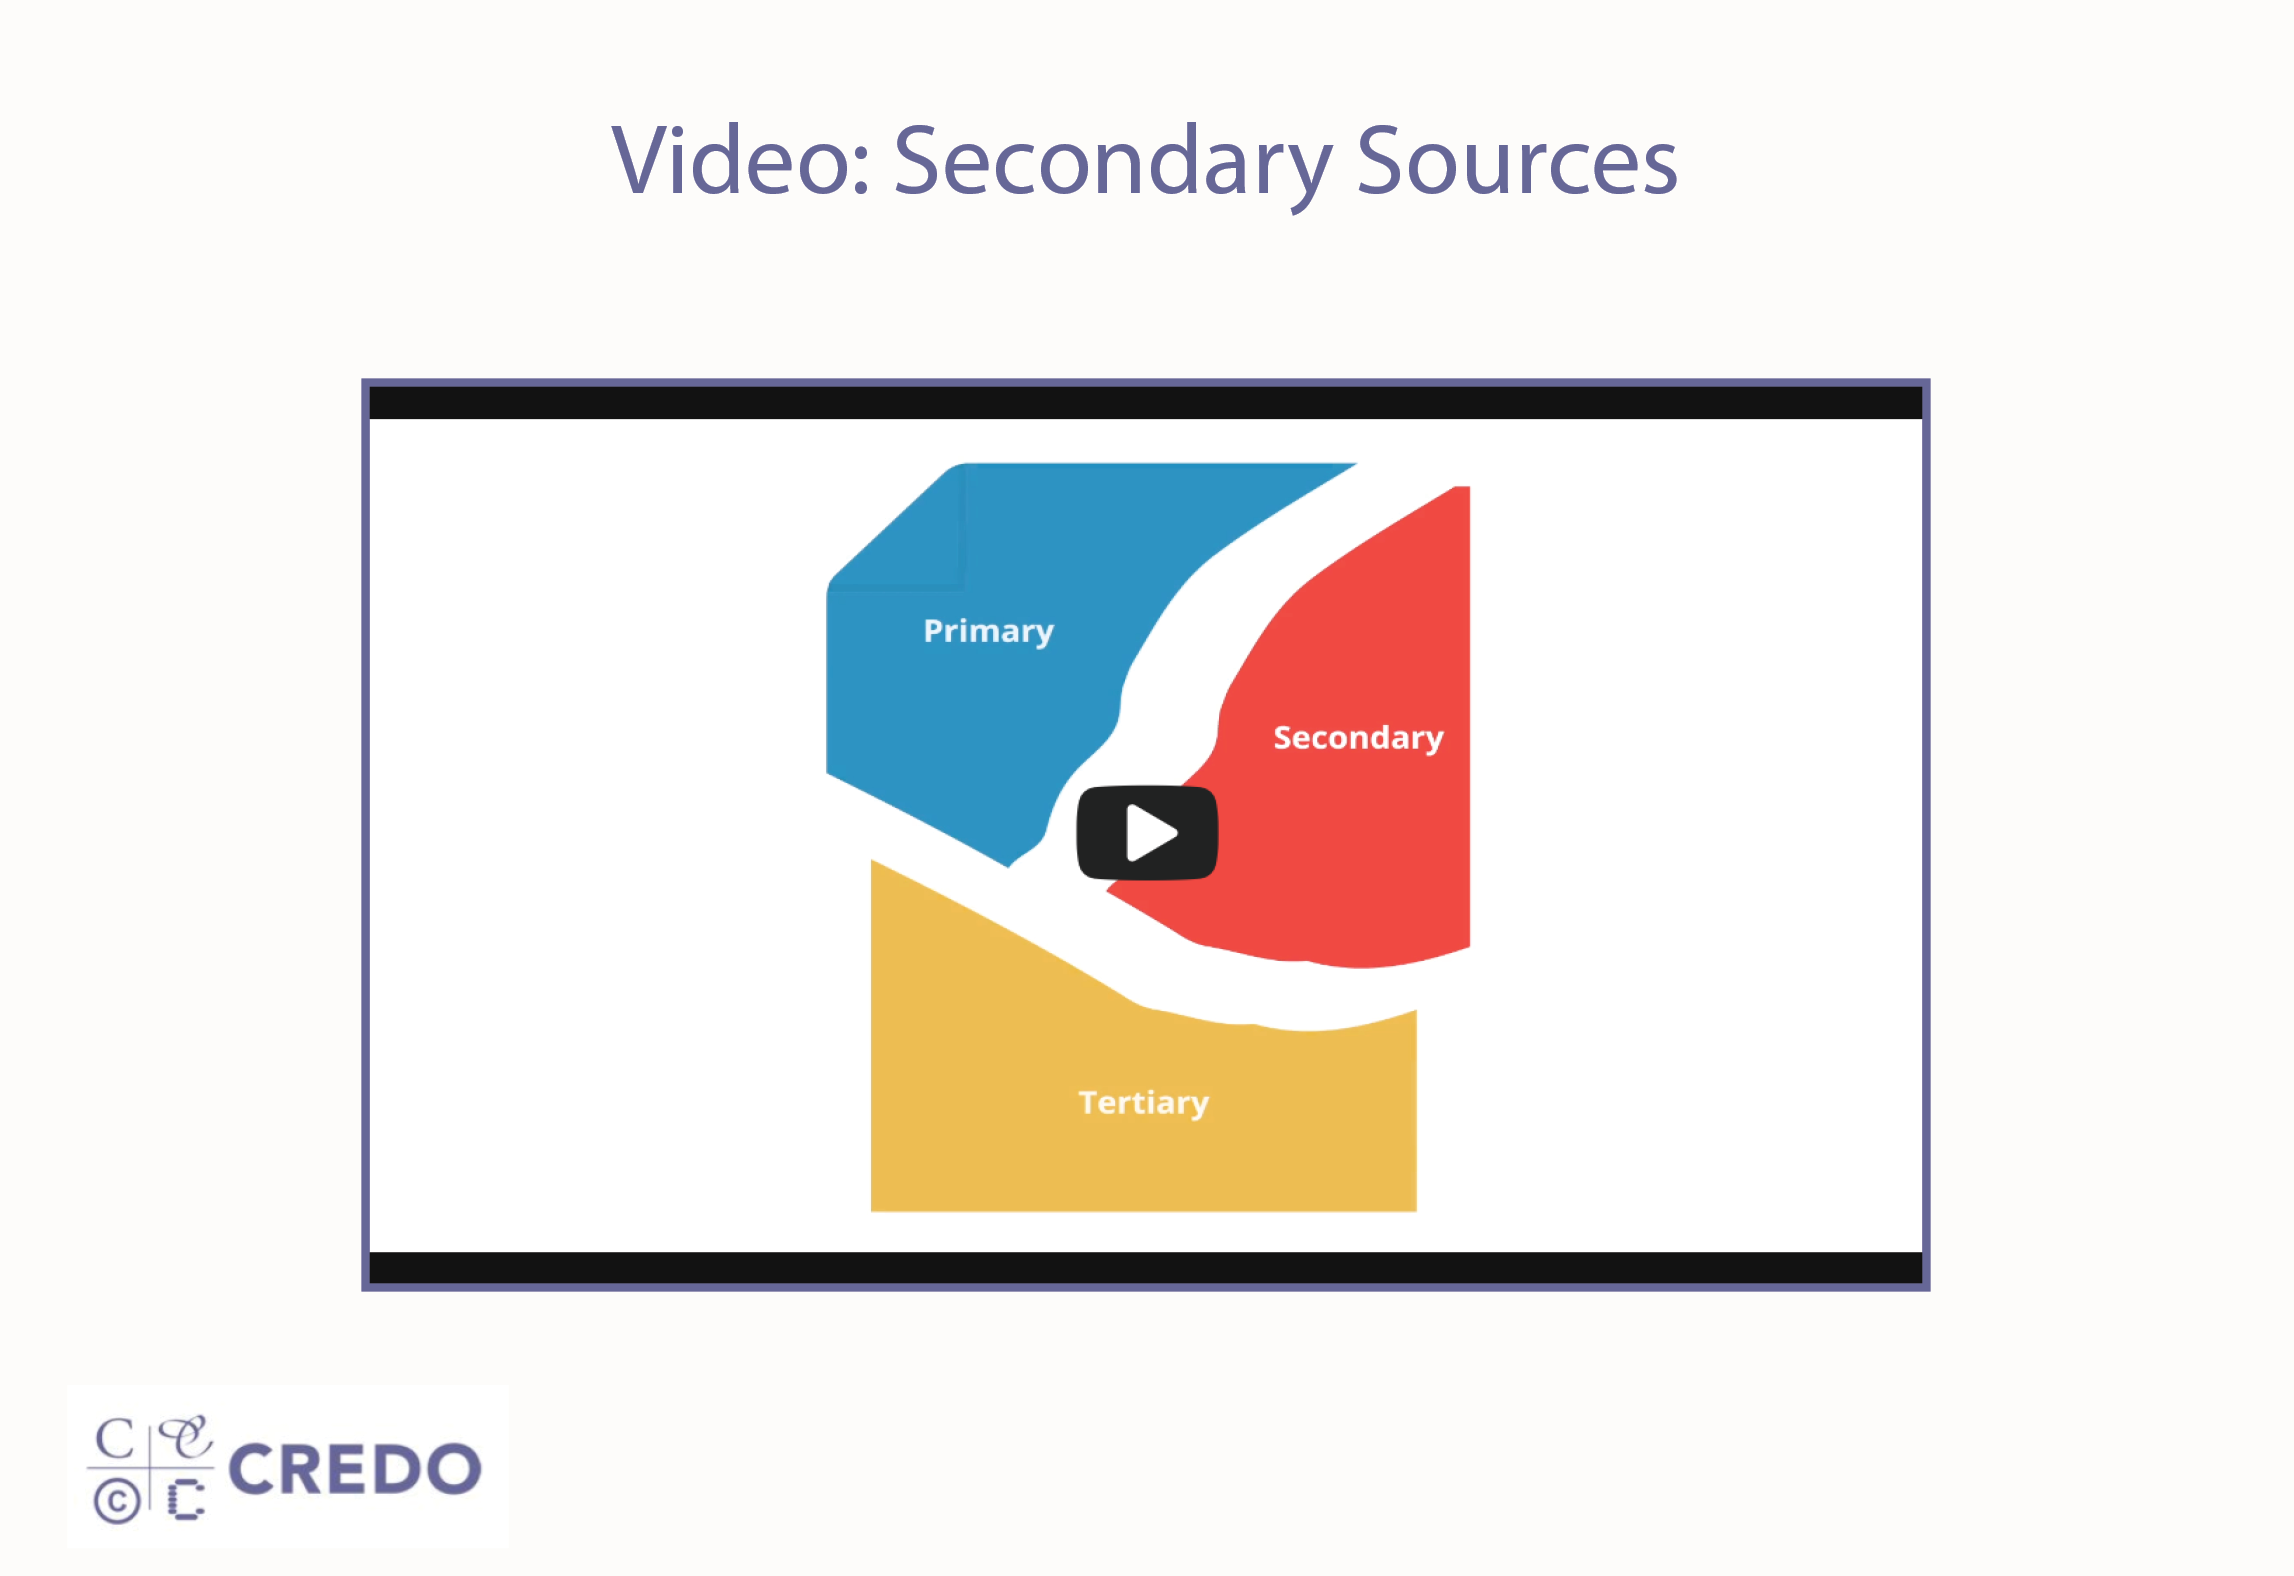 Video: Secondary Sources